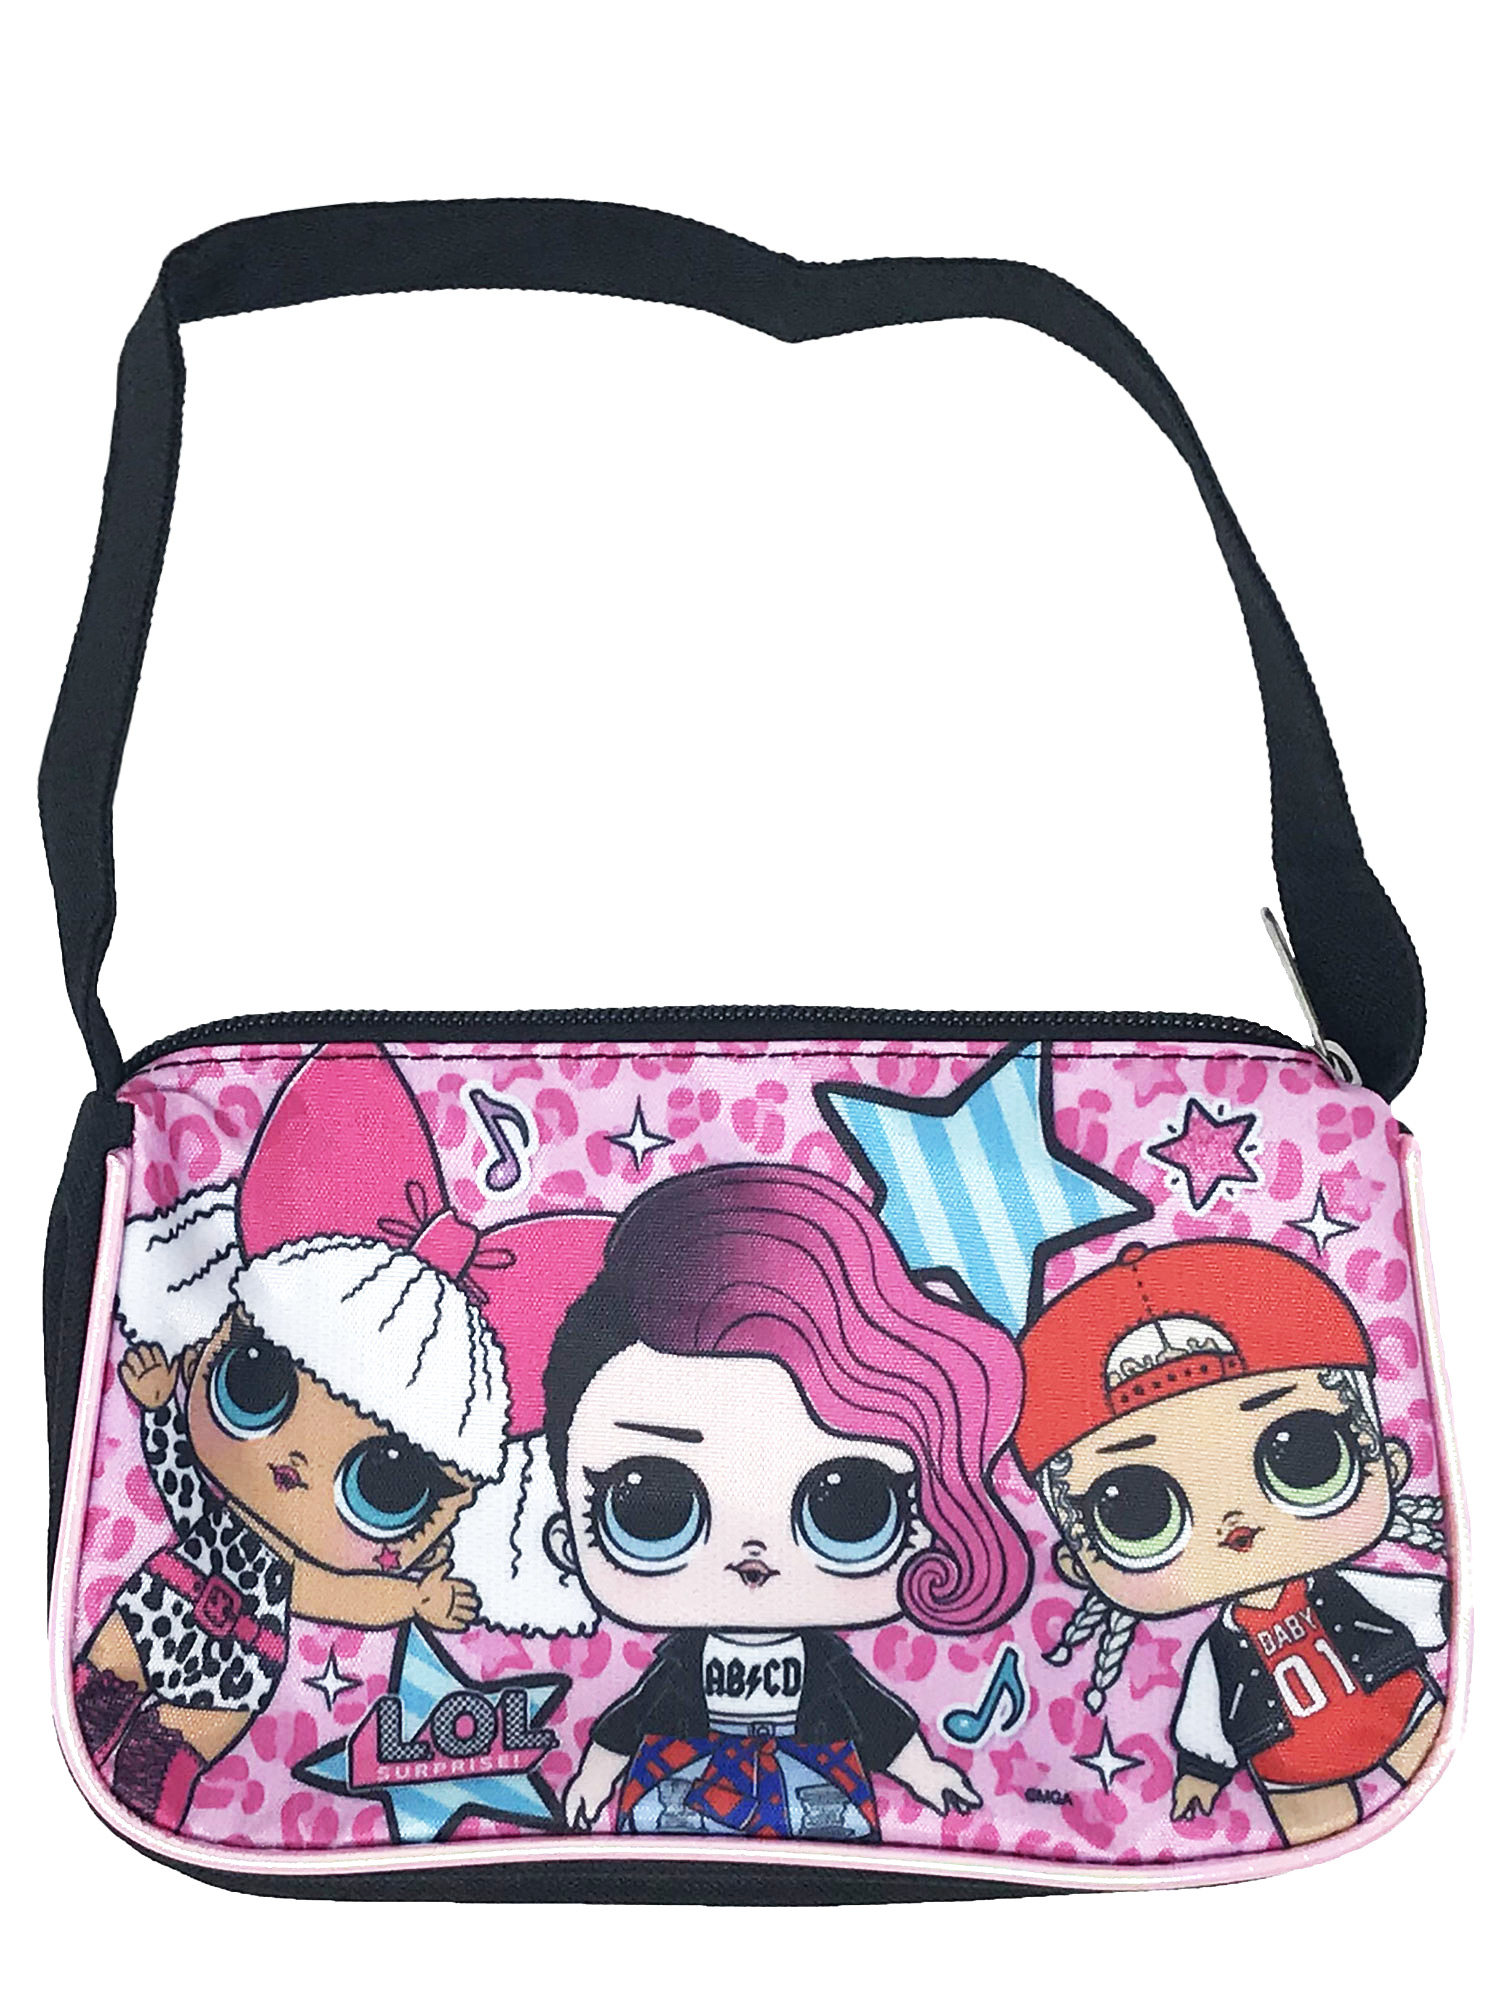 Girls LOL Surprise! Glee Club Shoulder Bag Purse Black Diva Rocker M.C. Swag